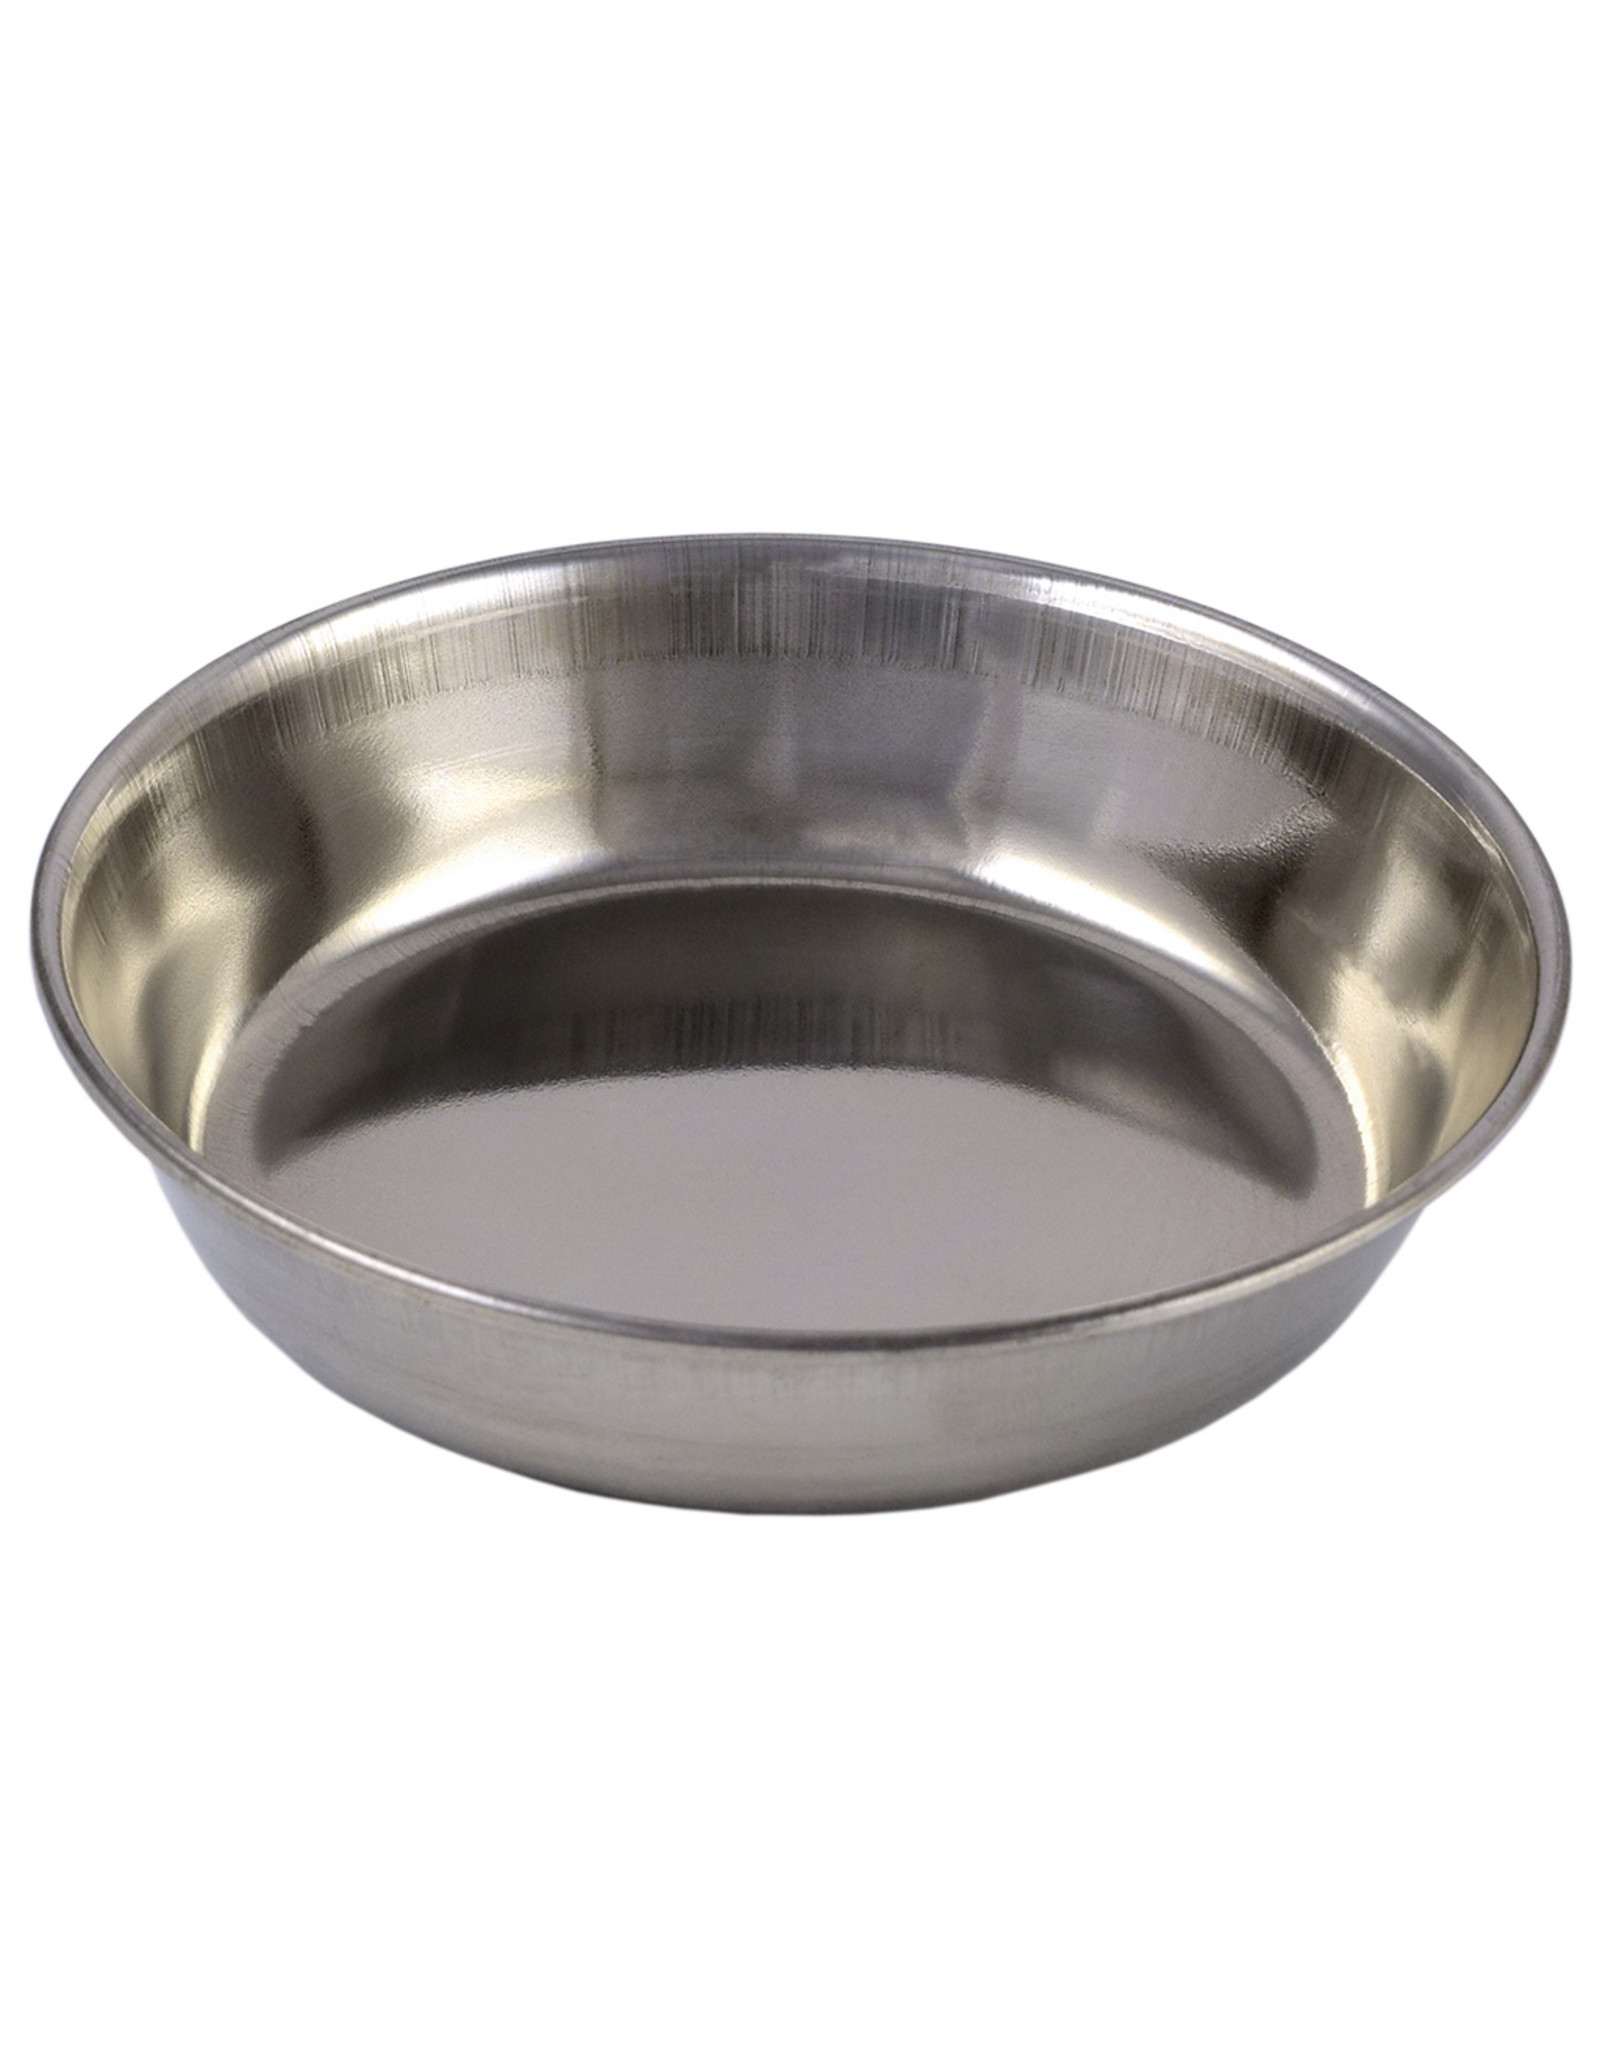 Unleashed Stainless Steel Saucer